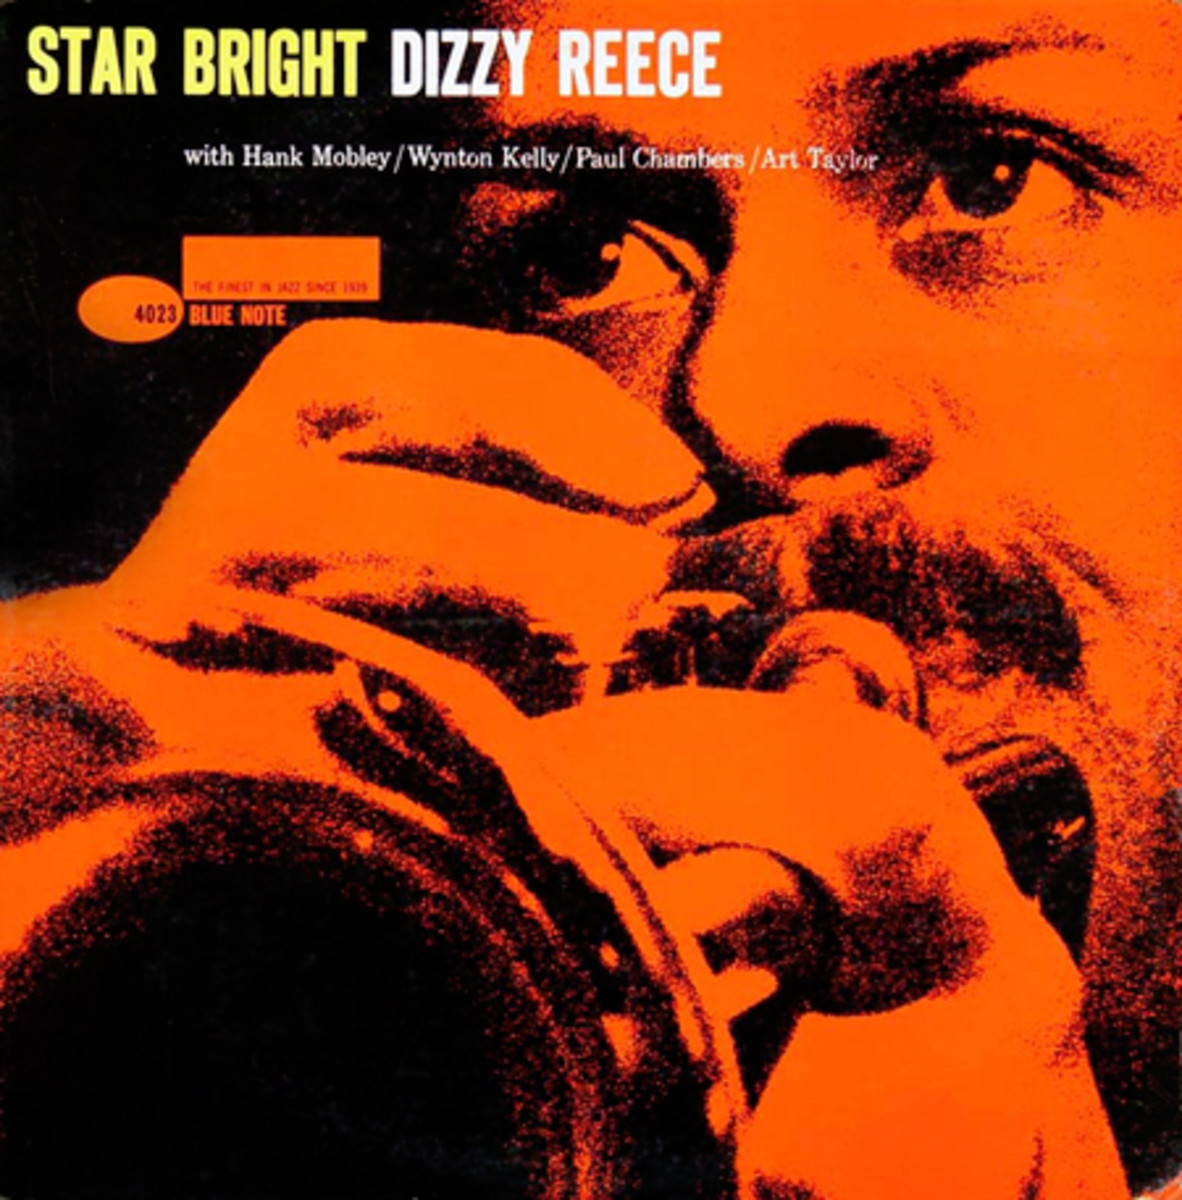 "Dizzy Reece ""Star Bright"" Blue Note Records 4023 12"" LP Vinyl Record (1959) Album Cover Design by Reid Miles Photo by Francis Wolff"